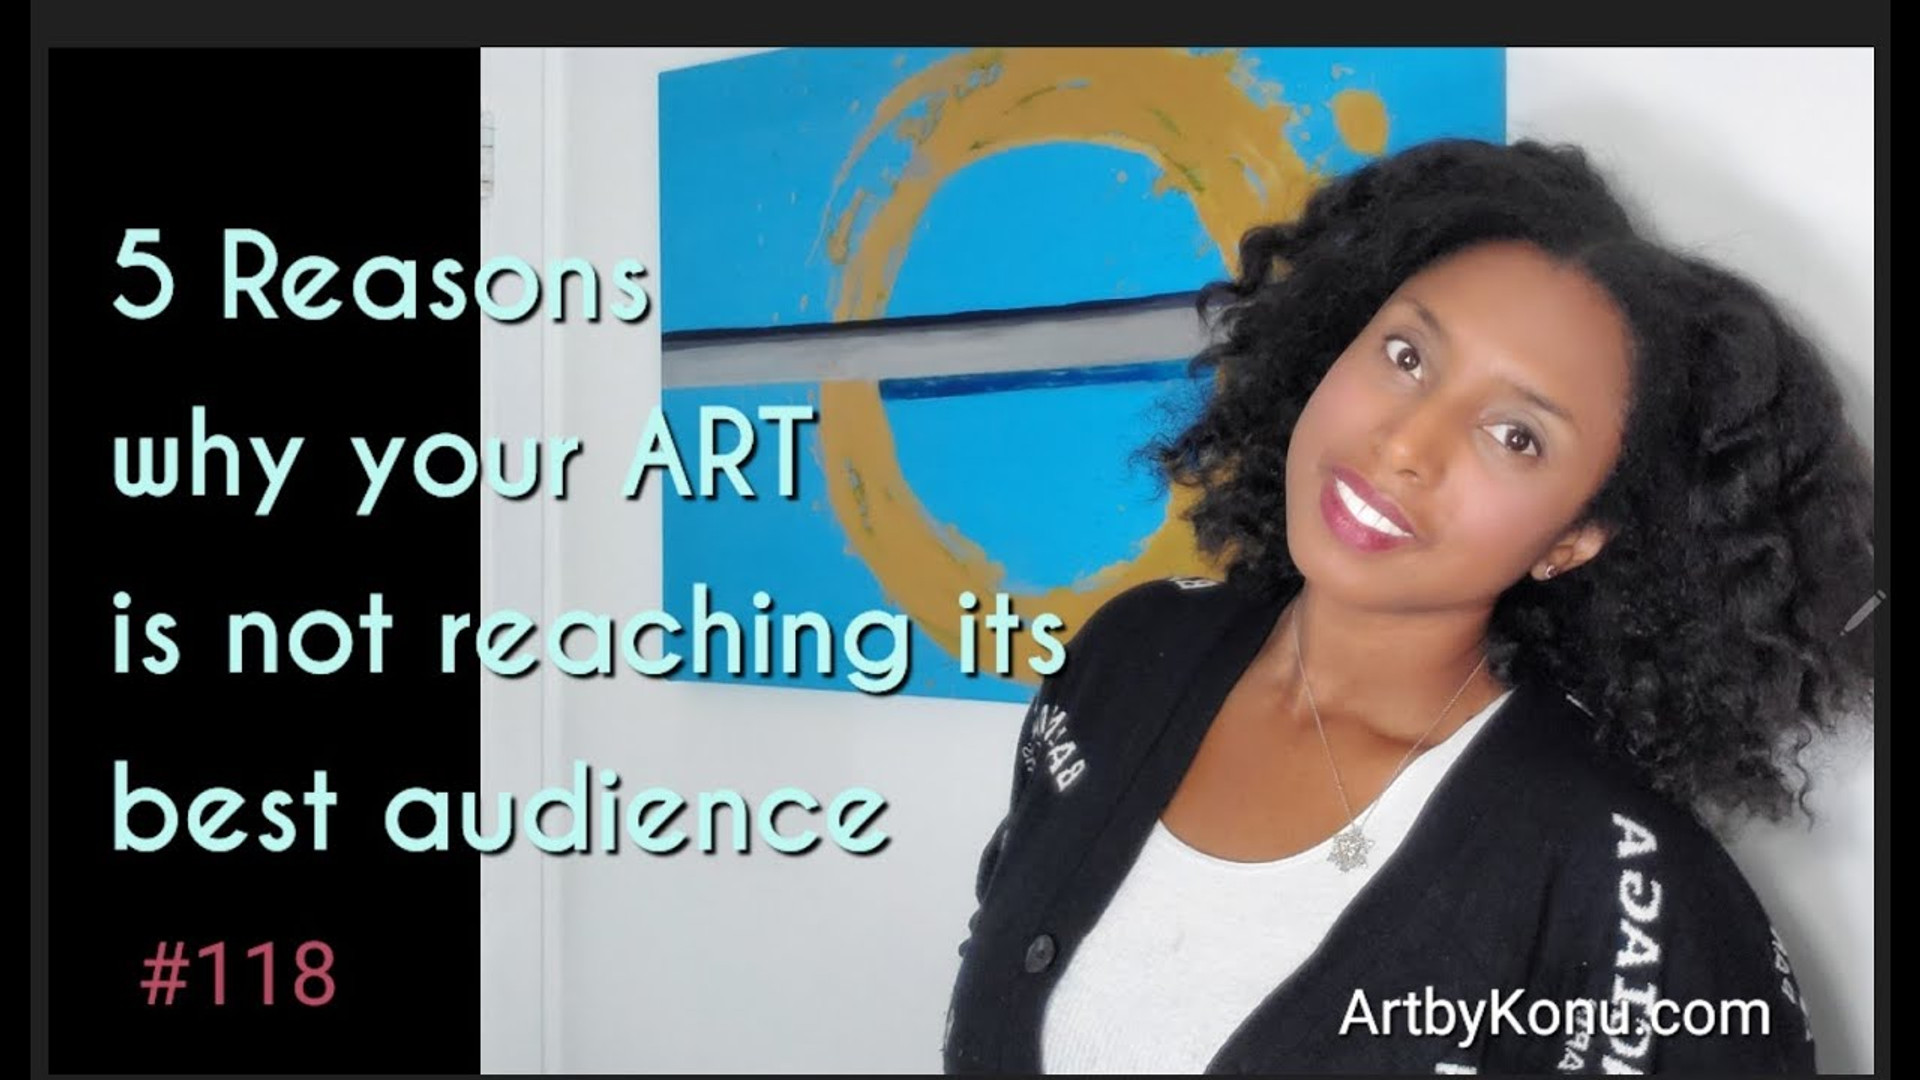 5 Reasons why your ART is not reaching its best audience